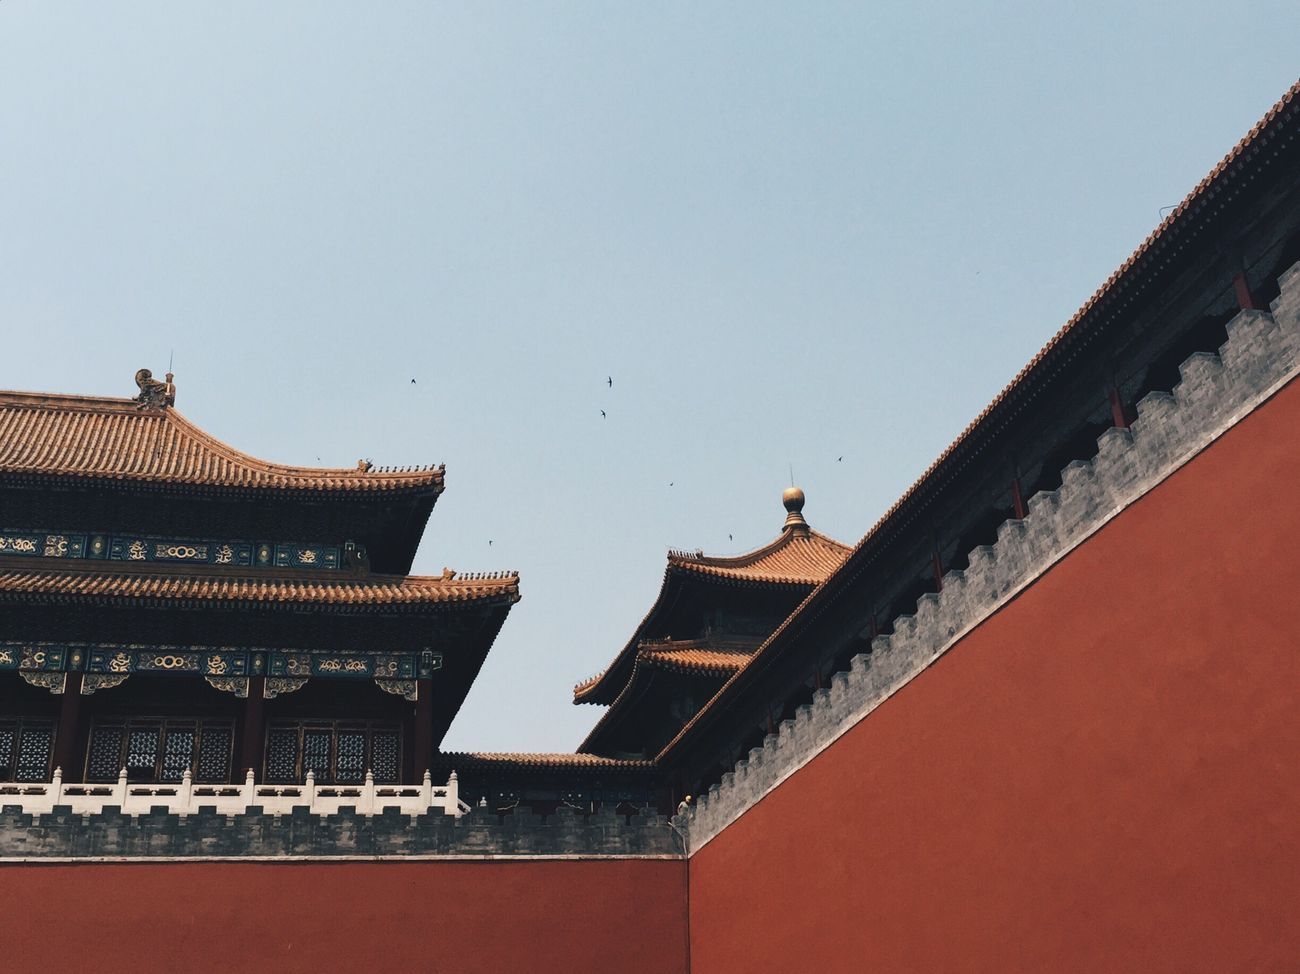 07.07.15 Architecture Built Structure Building Exterior Clear Sky Low Angle View City Day History Historical Building Minimalism Roof No People Bird Outdoors Animal Themes (null)Forbidden City EyeEm Best Shots EyeEm Best Edits Beijing 北京 China 中国 BEIJING北京CHINA中国BEAUTY